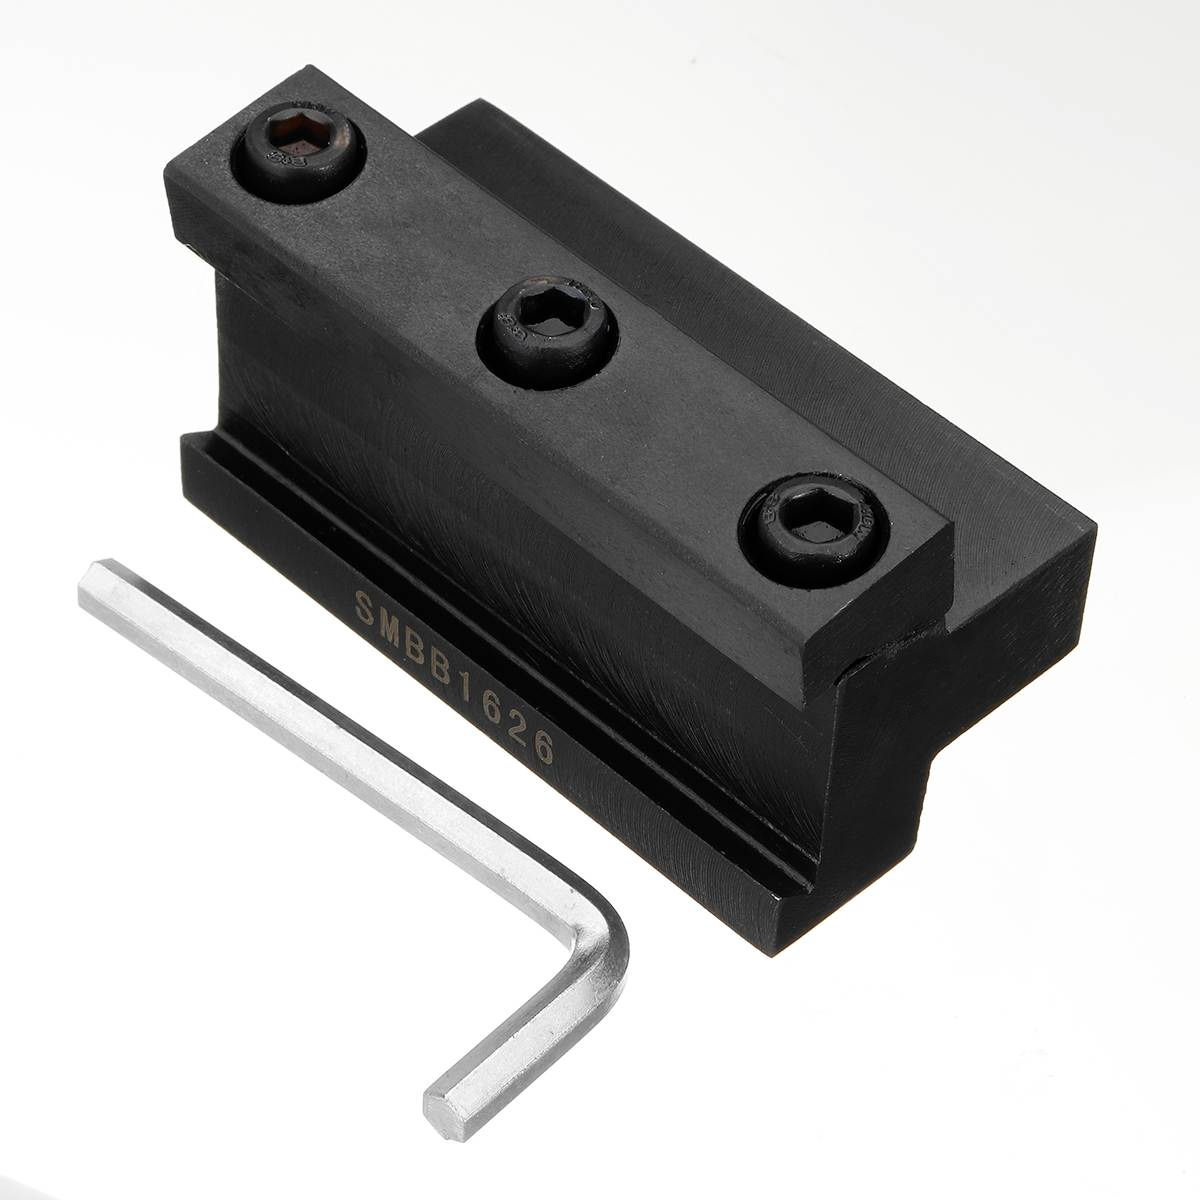 SMBB1626 Cutting Blade Holder For Cut-Off Cutter Part Off Blade Inserts For GTN-2 GTN-3 Turning Tool